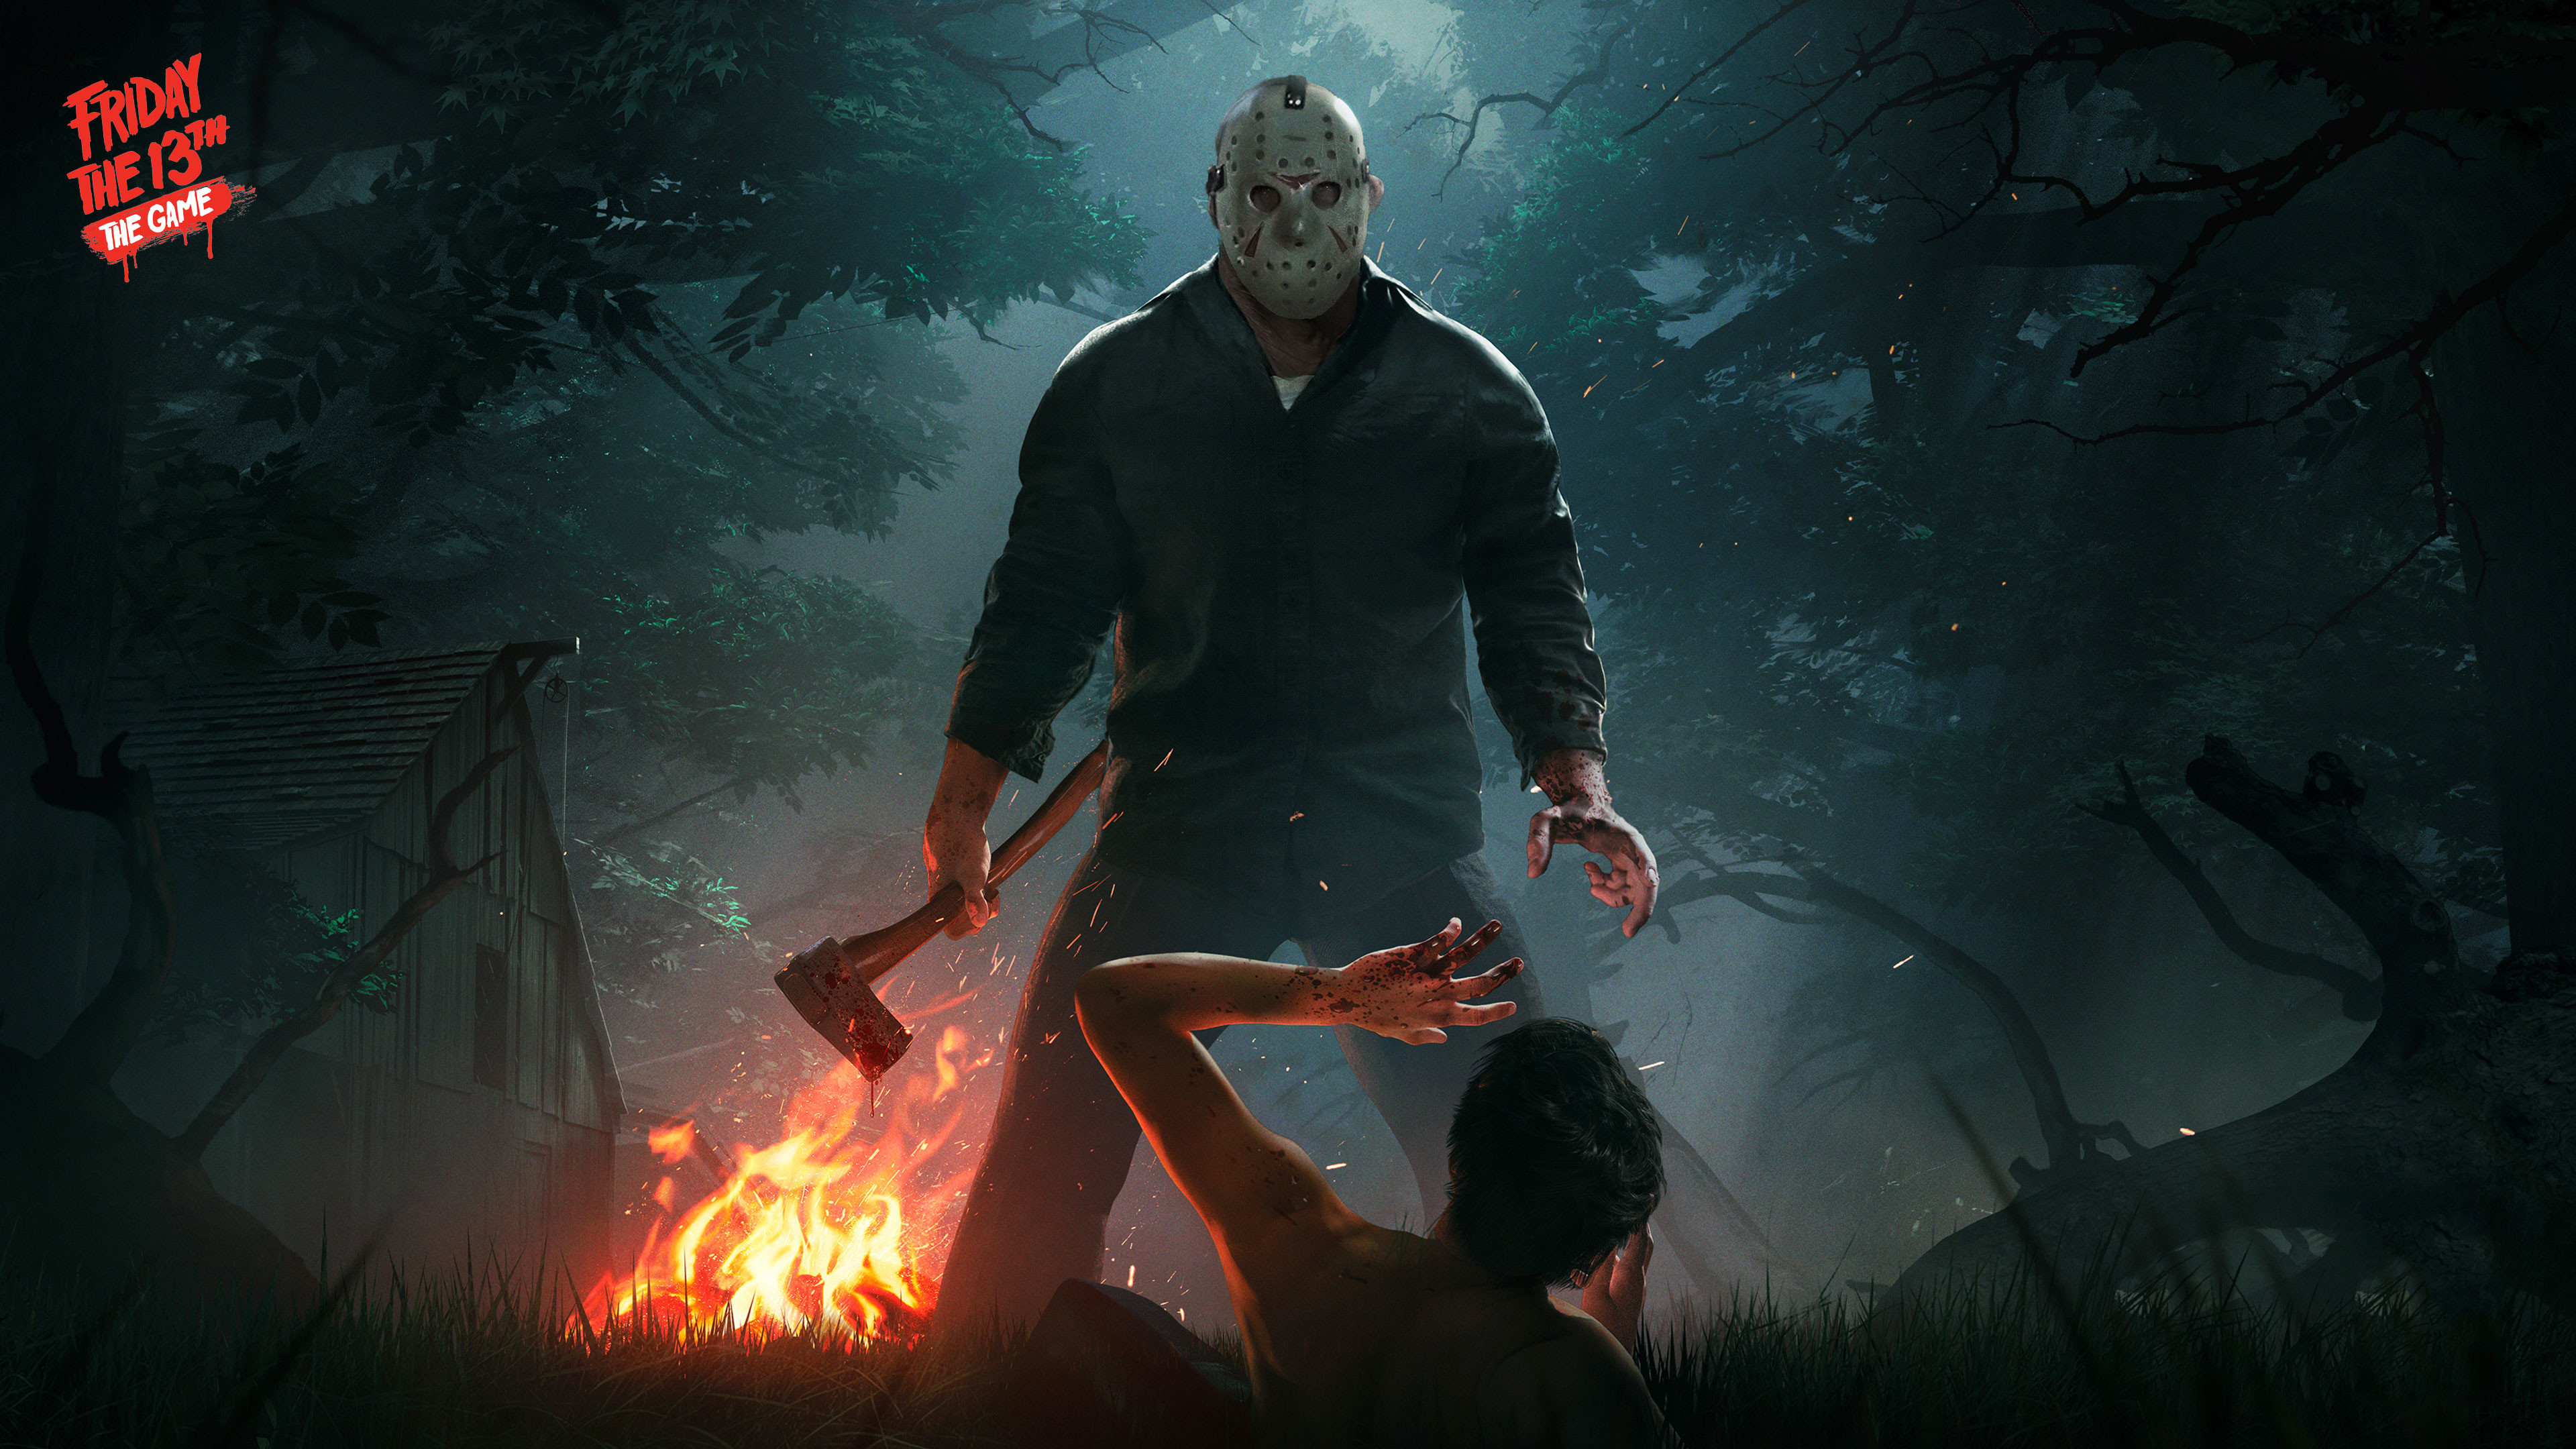 Res: 3840x2160, Friday the 13th the game 4K Wallpaper ...